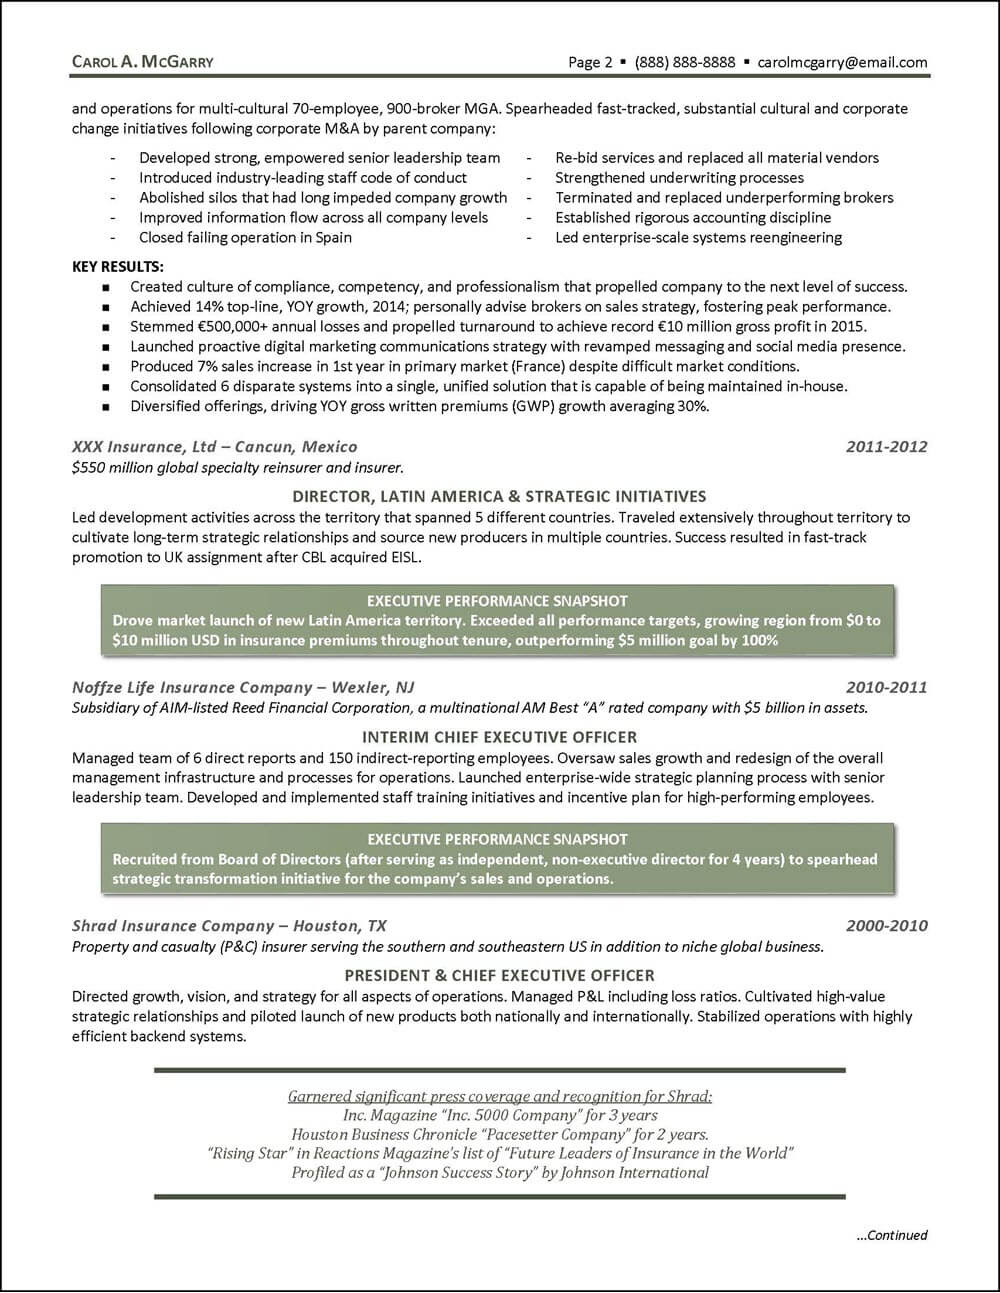 Insurance Industry Executive Resume - page 2